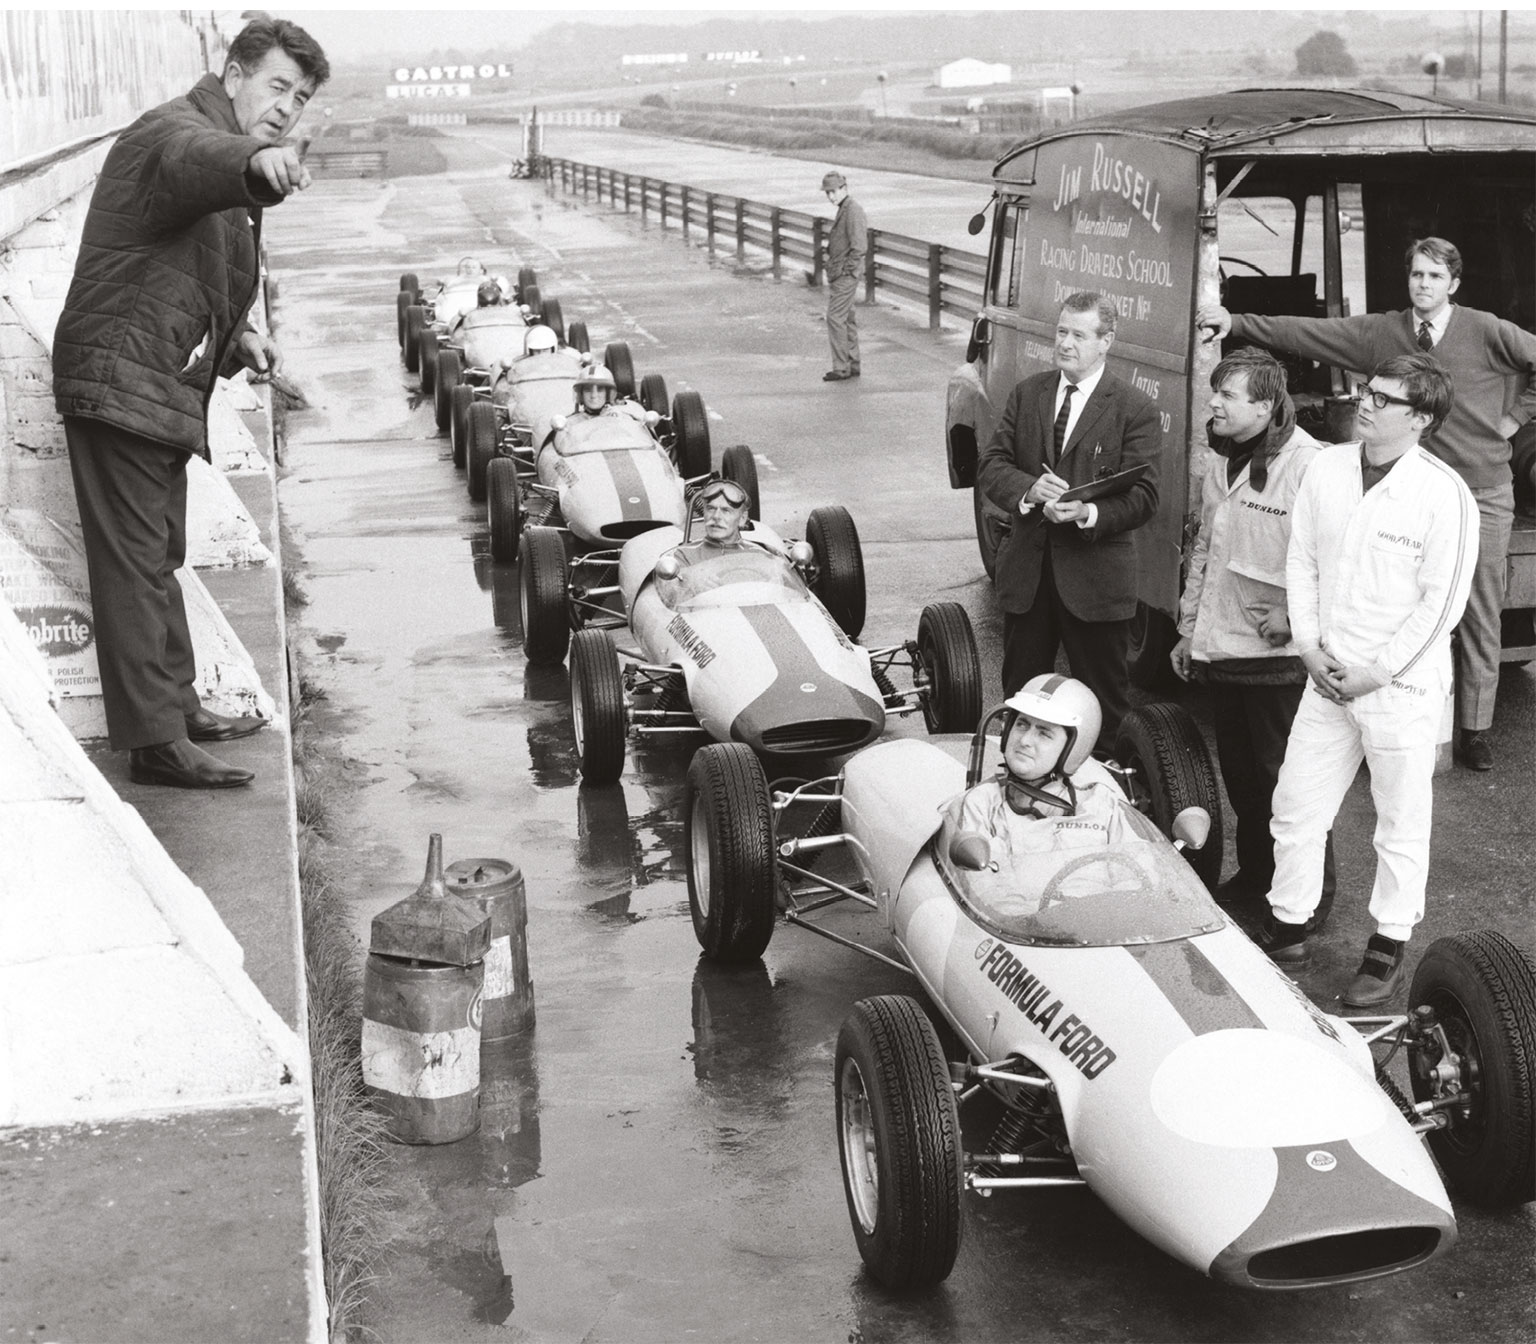 Aside from being a talented driver himself, Russell (above) inspired many others through his racing school